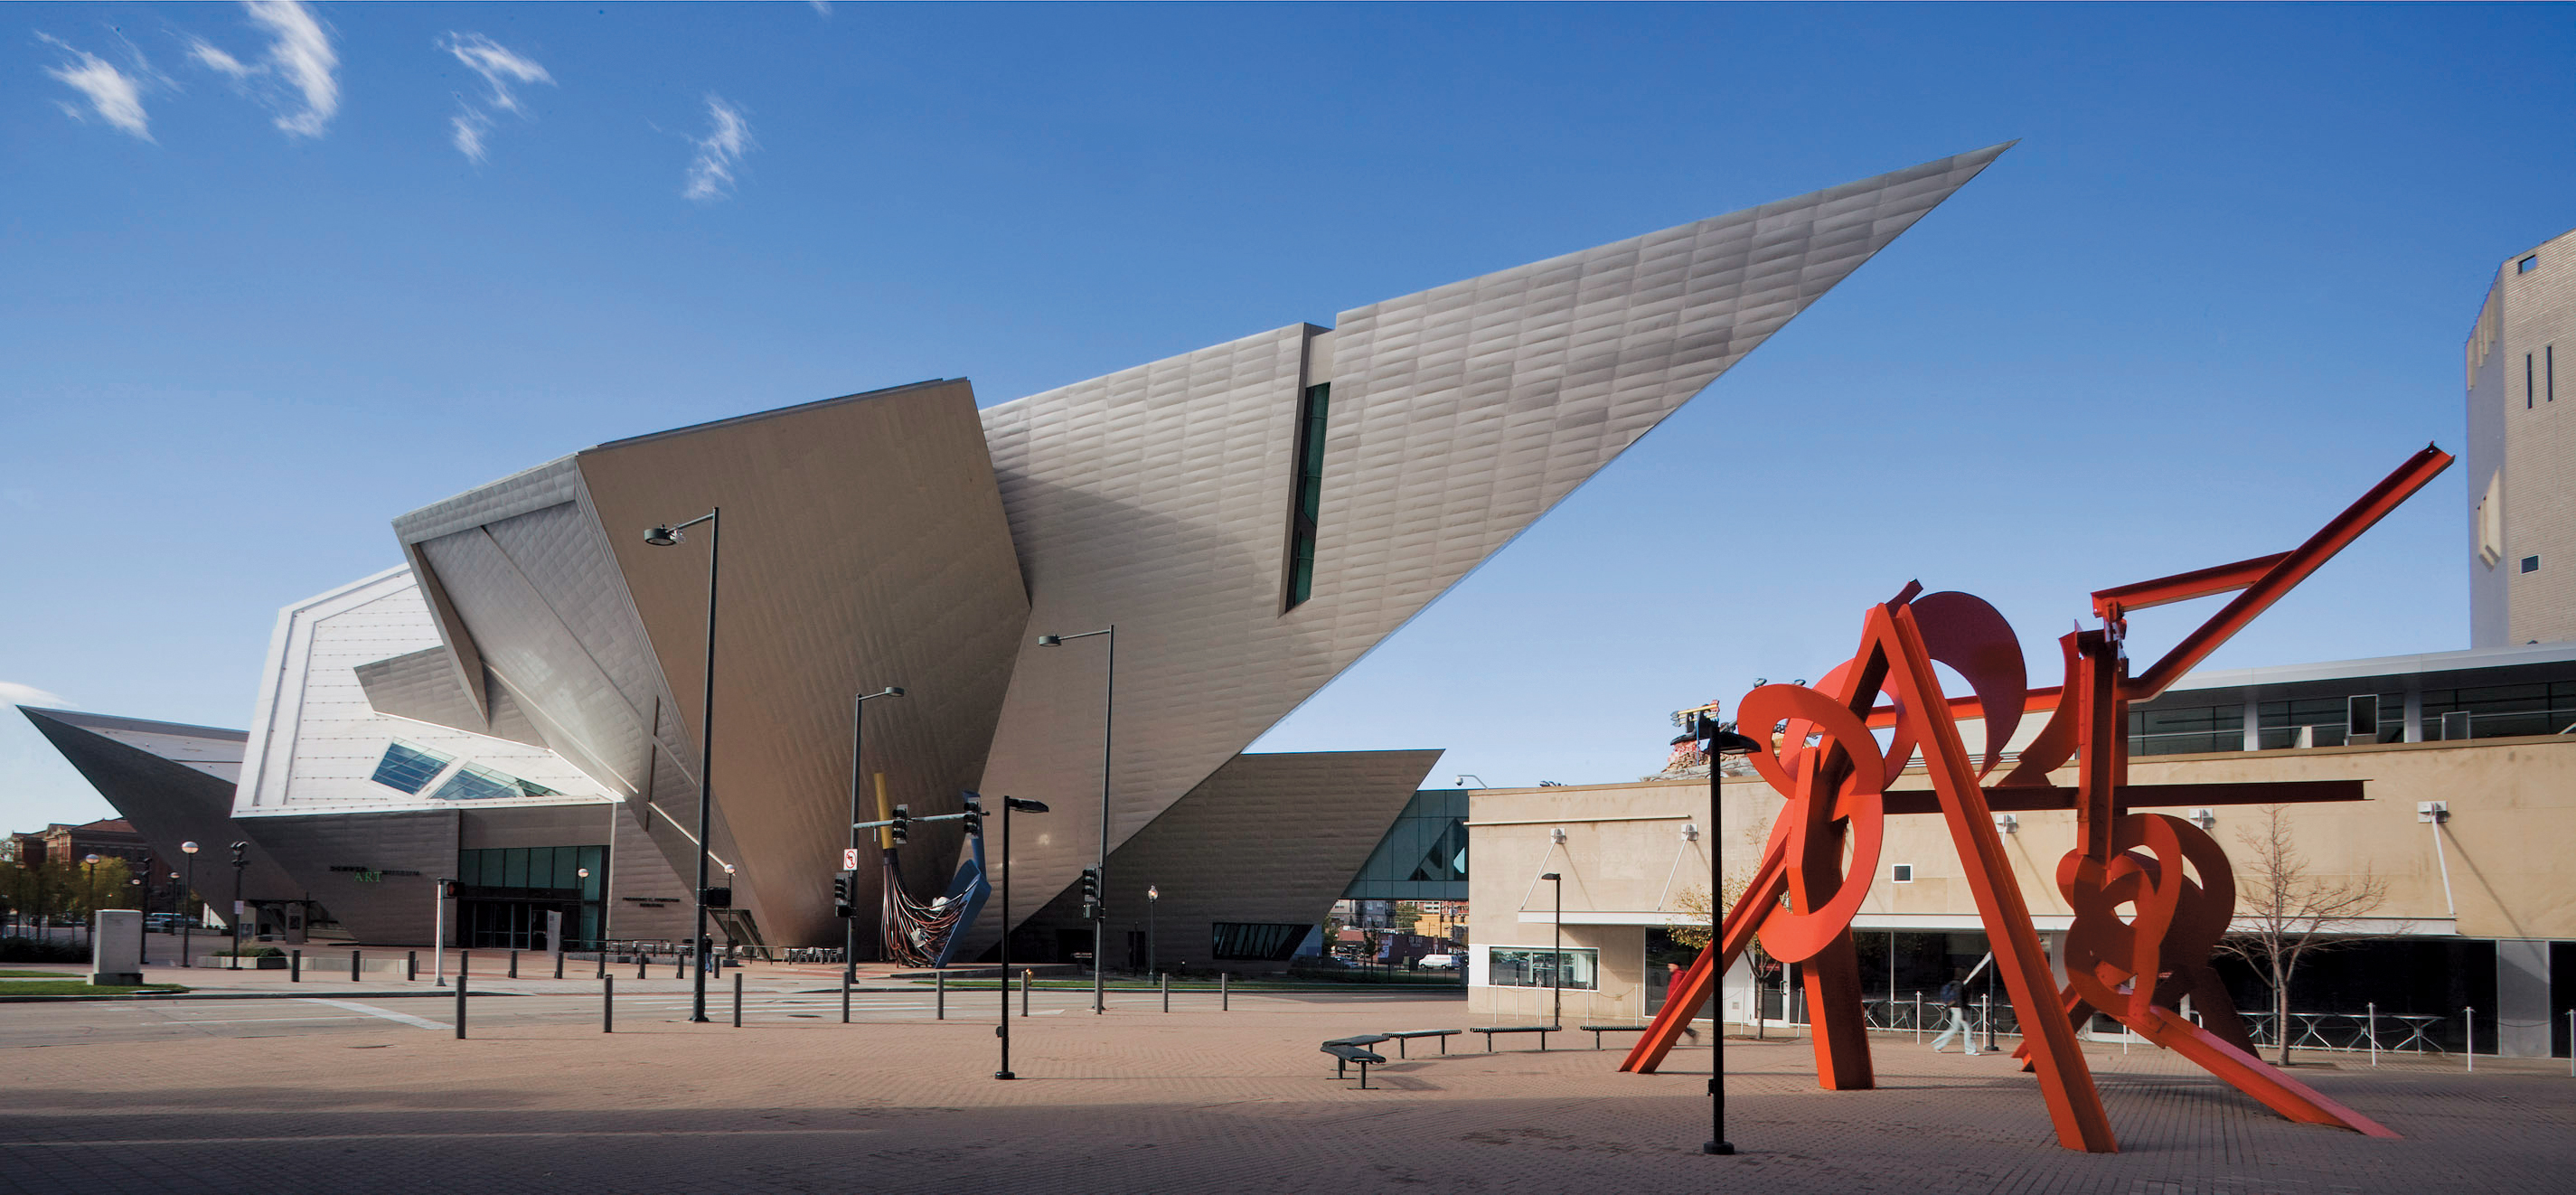 exterior of Denver Art Museum with sculpture